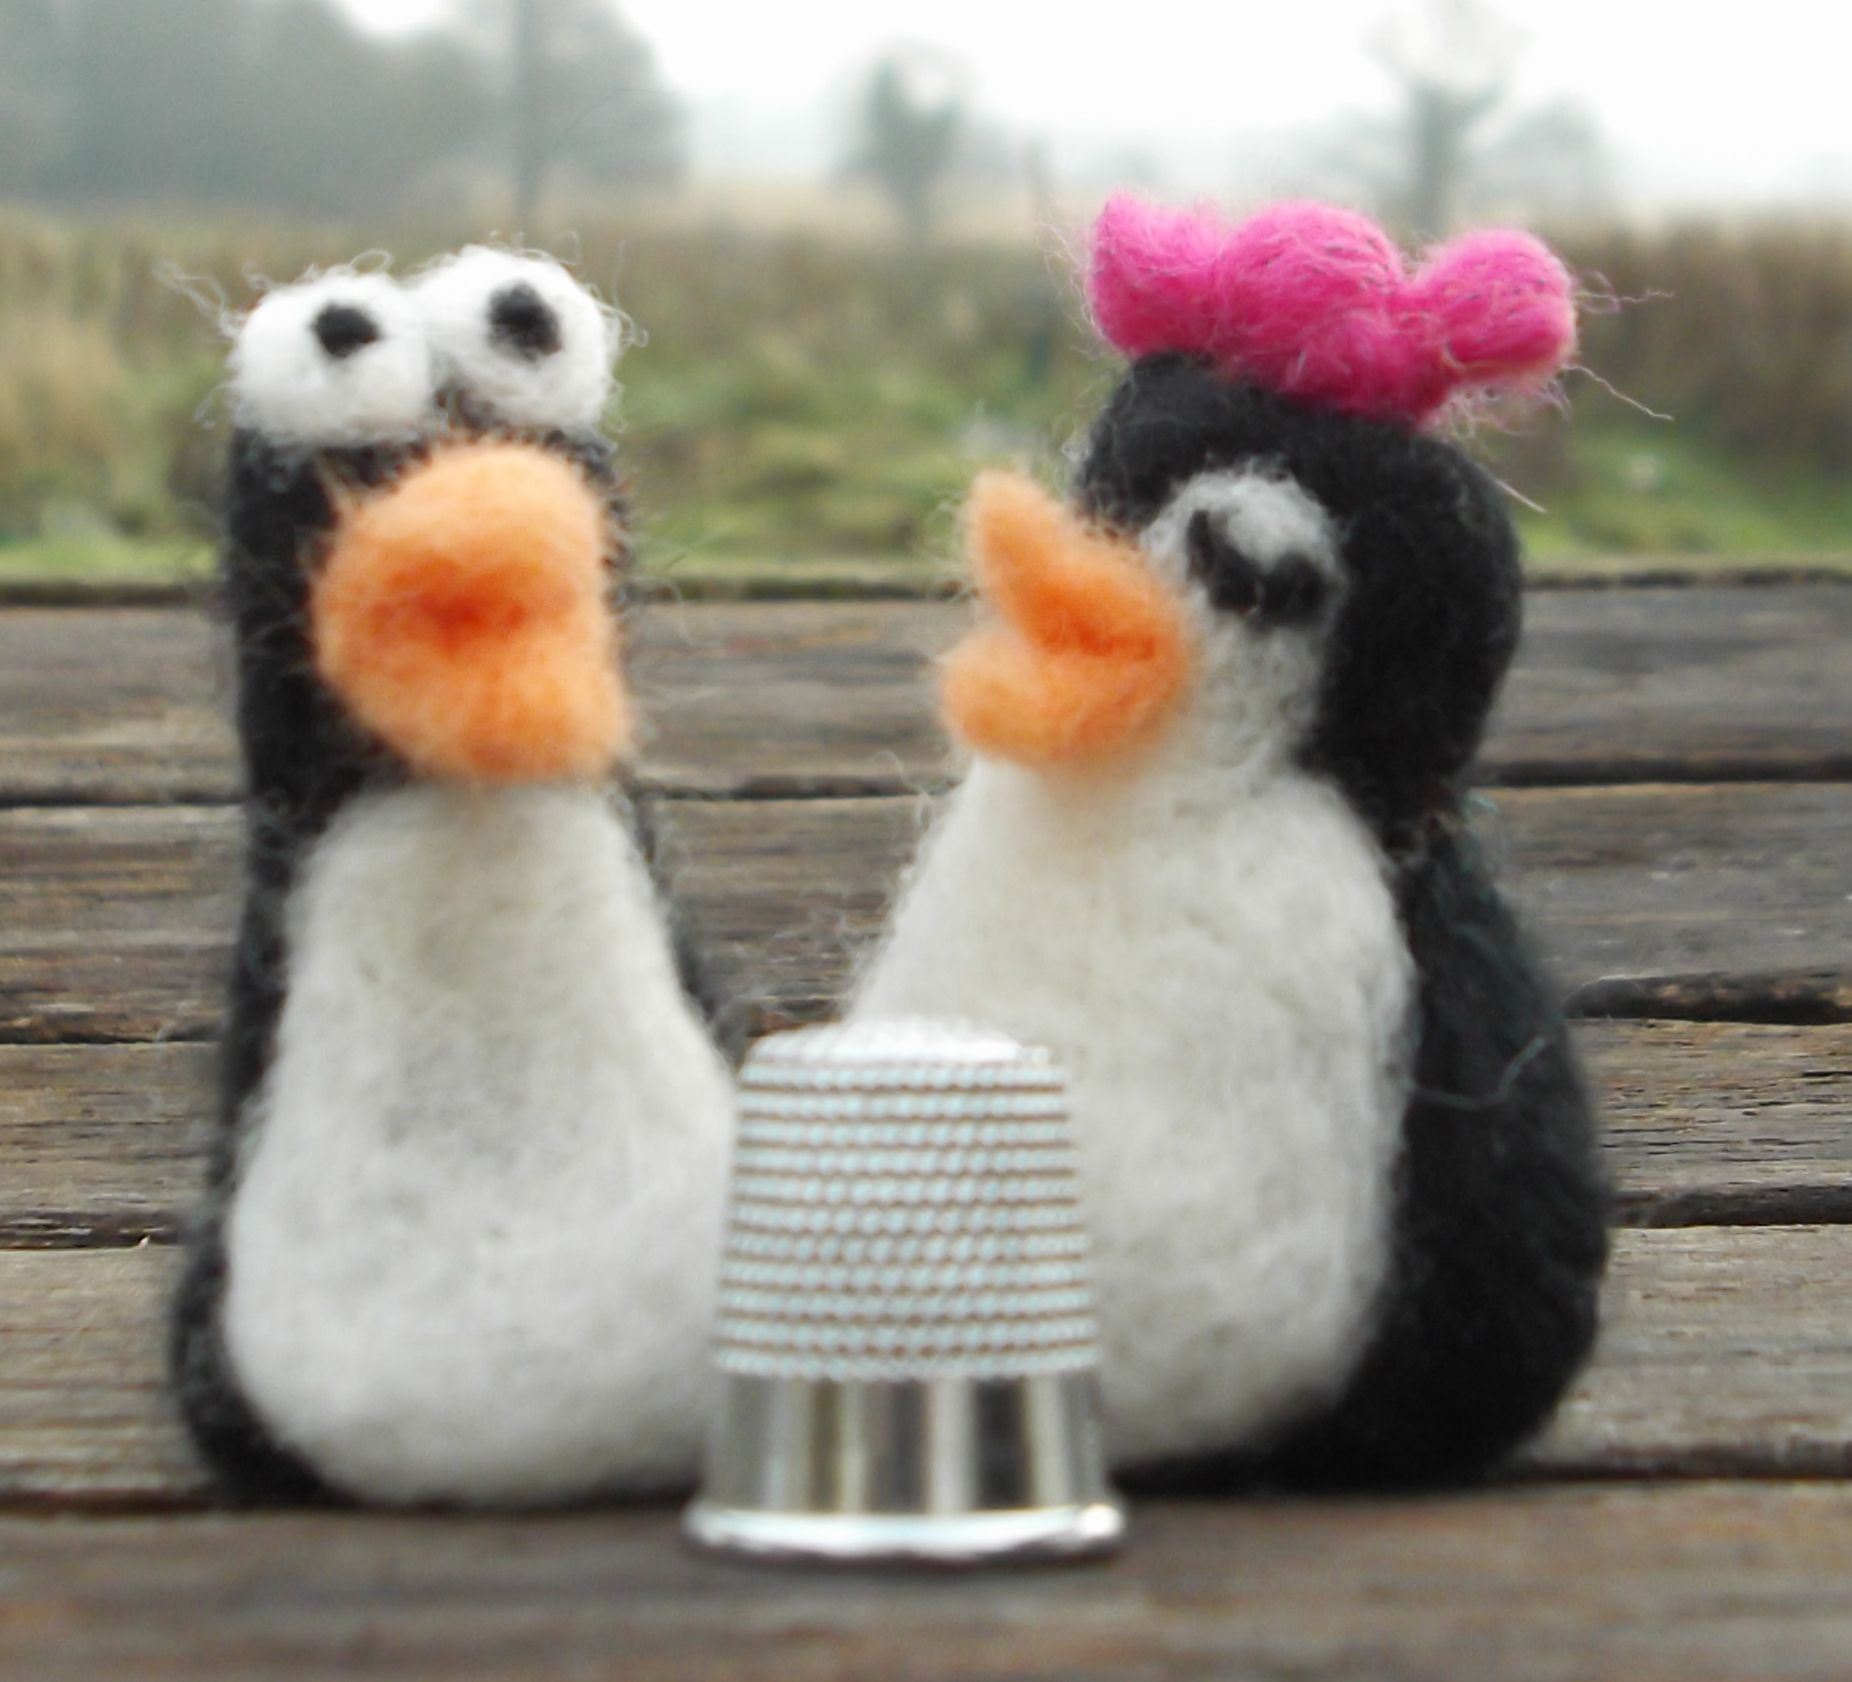 Icle tiny penguins in love <3